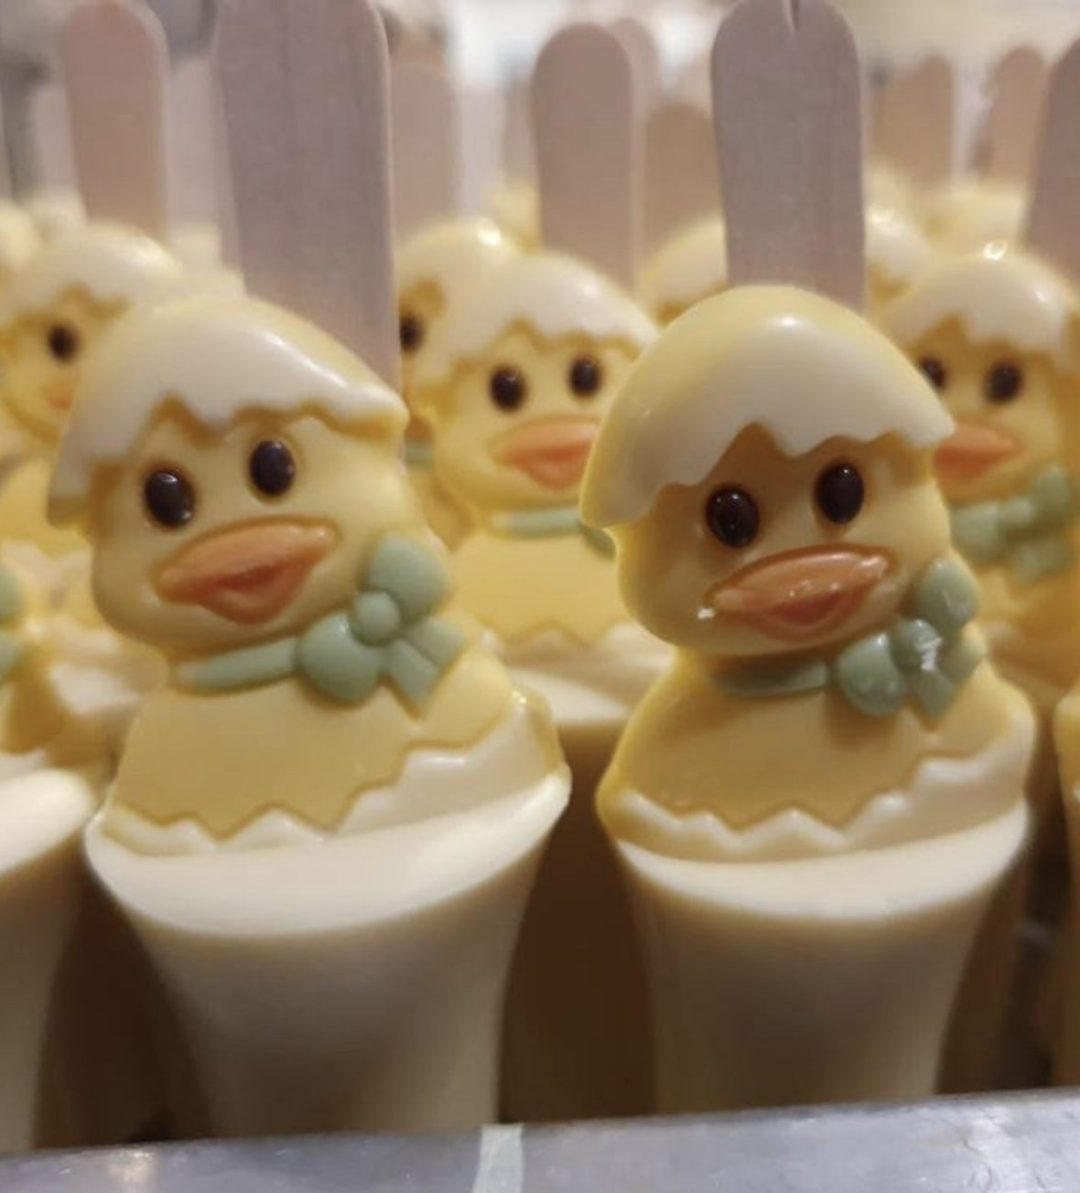 Cute Easter Chick White Hot Chocolate Spoon